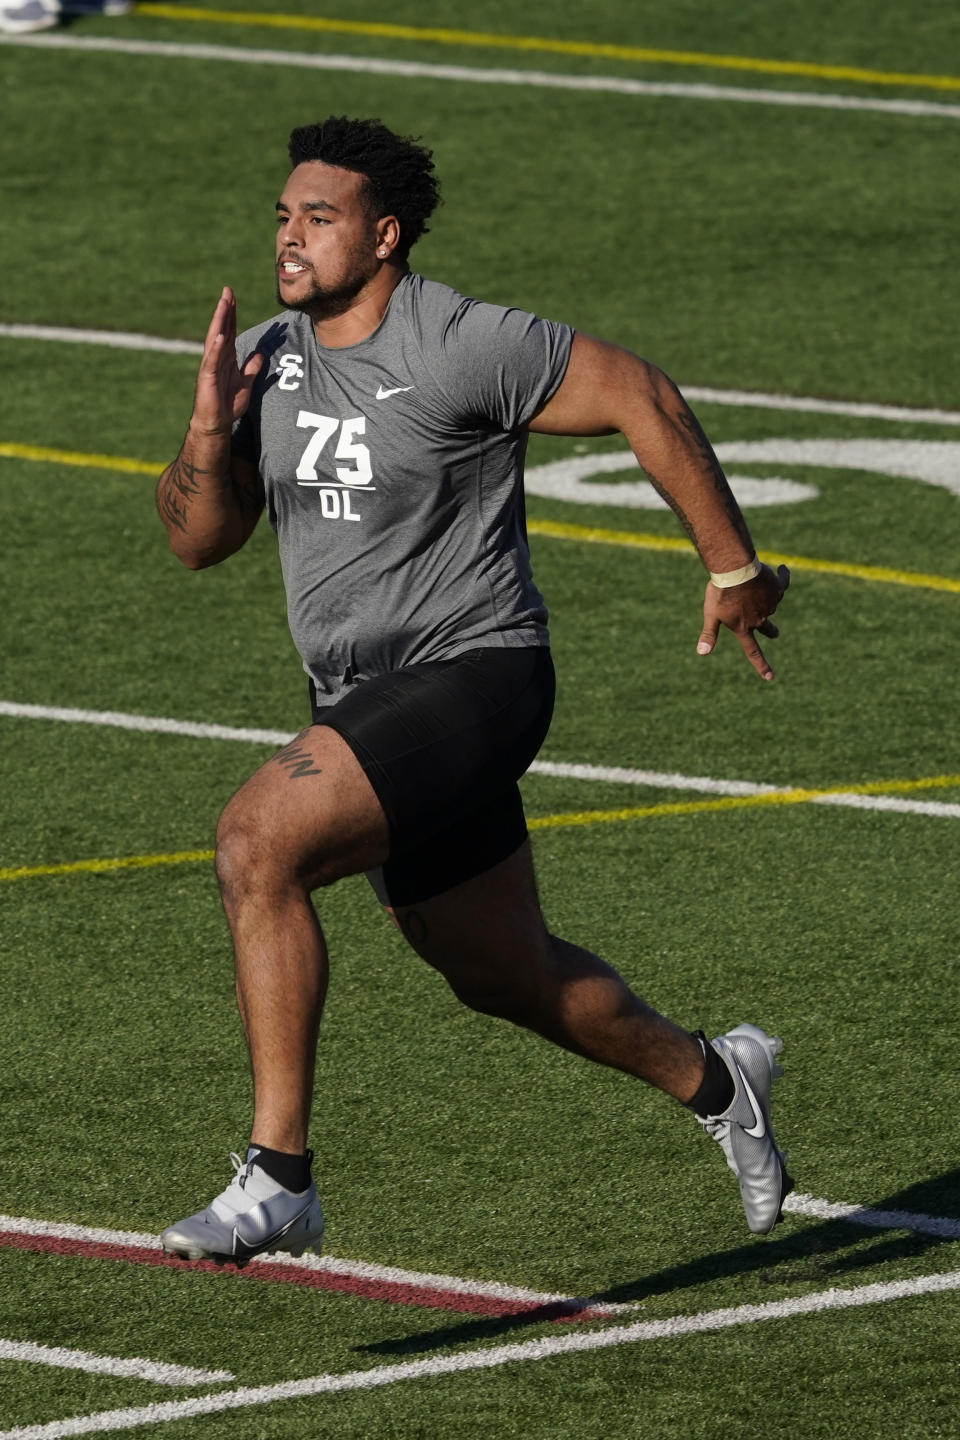 FILE - Southern California lineman Alijah Vera-Tucker participates in the school's pro day football workout for NFL scouts in Los Angeles, in this Wednesday, March 24, 2021, file photo. The Las Vegas Raiders spent the free agency period dismantling their offensive line and mostly ignoring the secondary. Now heading into the NFL draft, those are the two spots that appear to be the most urgent needs for the Raiders to fill starting with pick No. 17 in the first round. (AP Photo/Marcio Jose Sanchez, File)